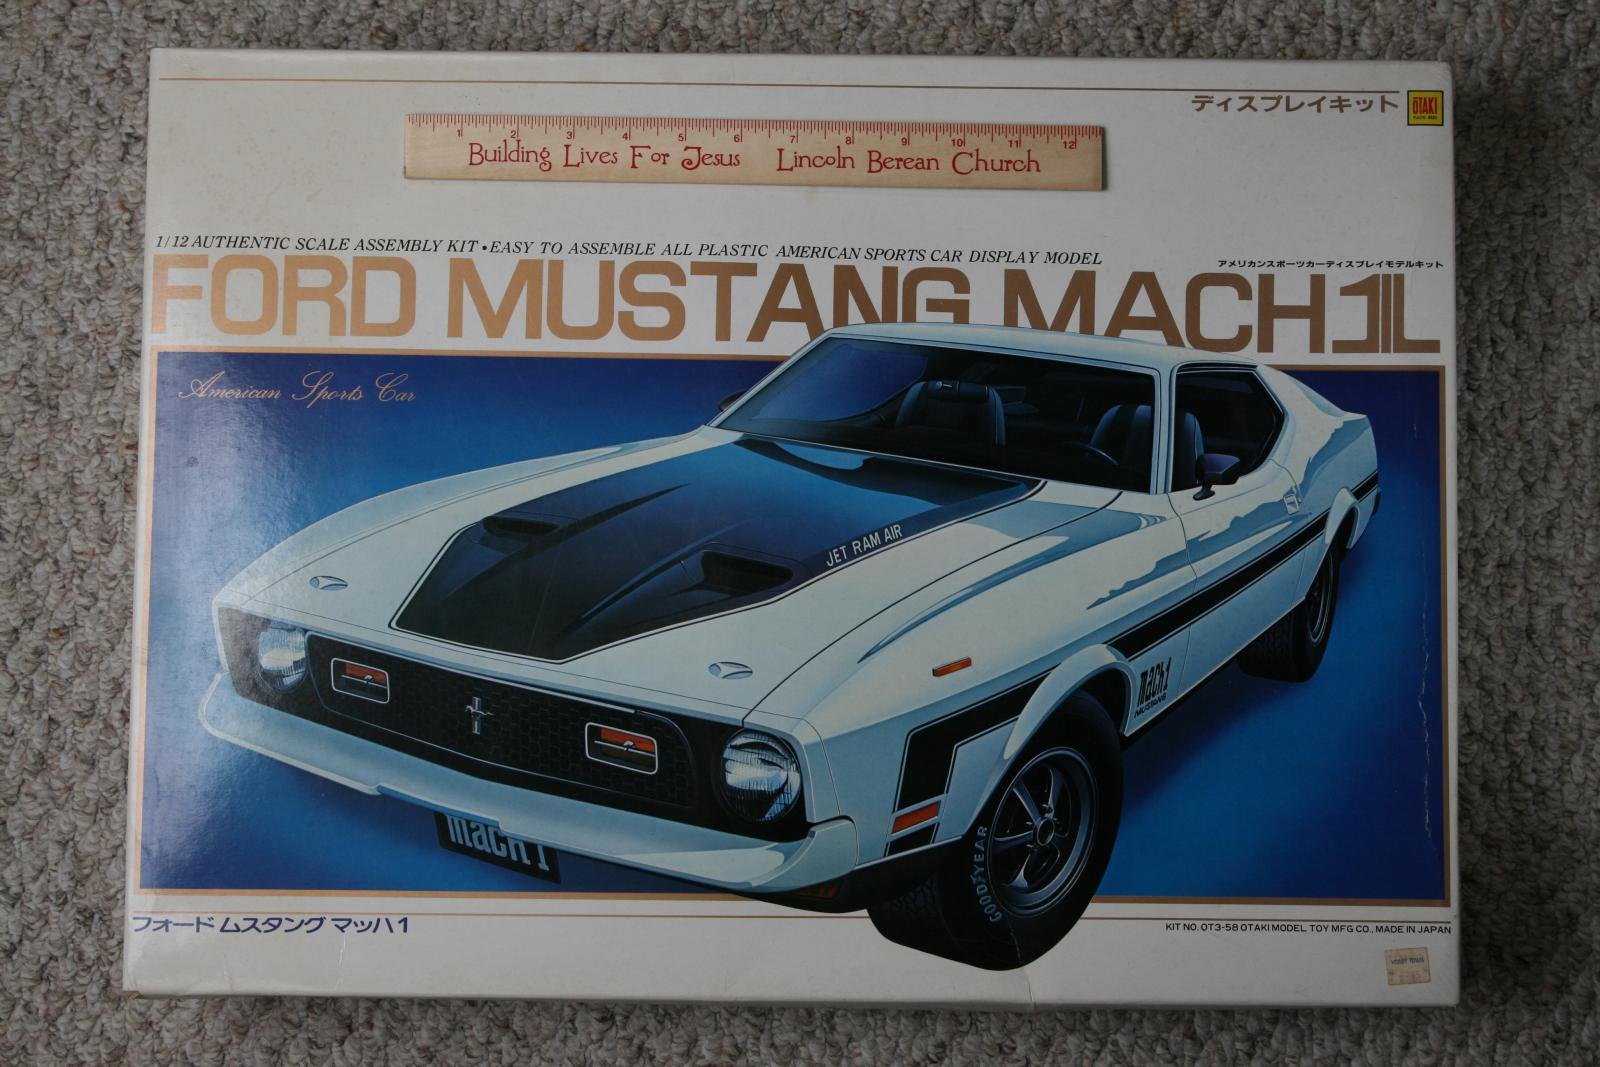 Ford Mustang Mach 1 1000x666 #12 New Design car #43905 cars ...